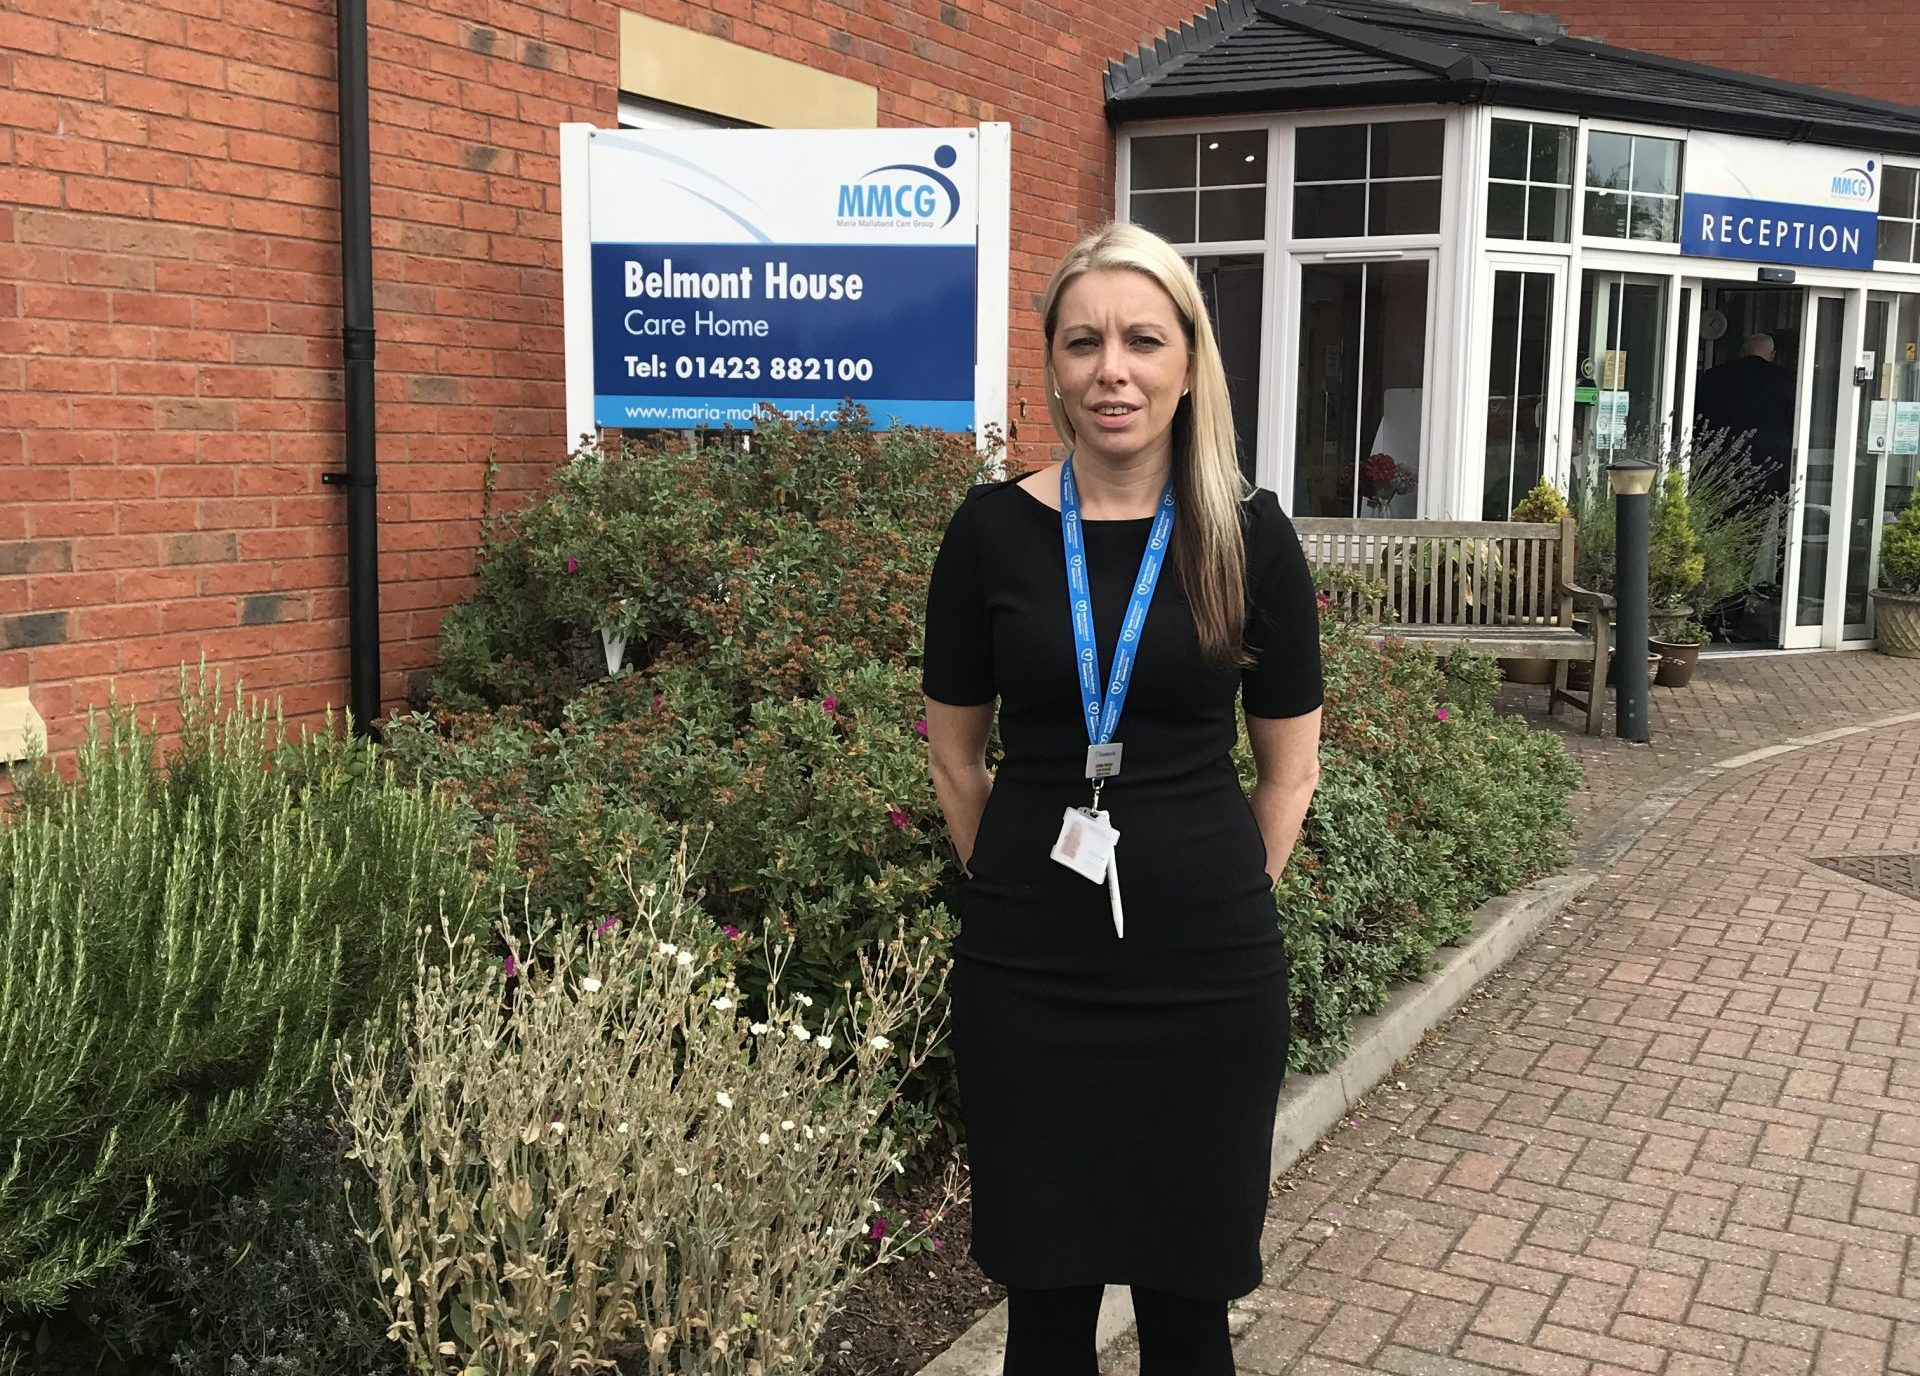 Harrogate care home to hold recruitment day for potential healthcare workers